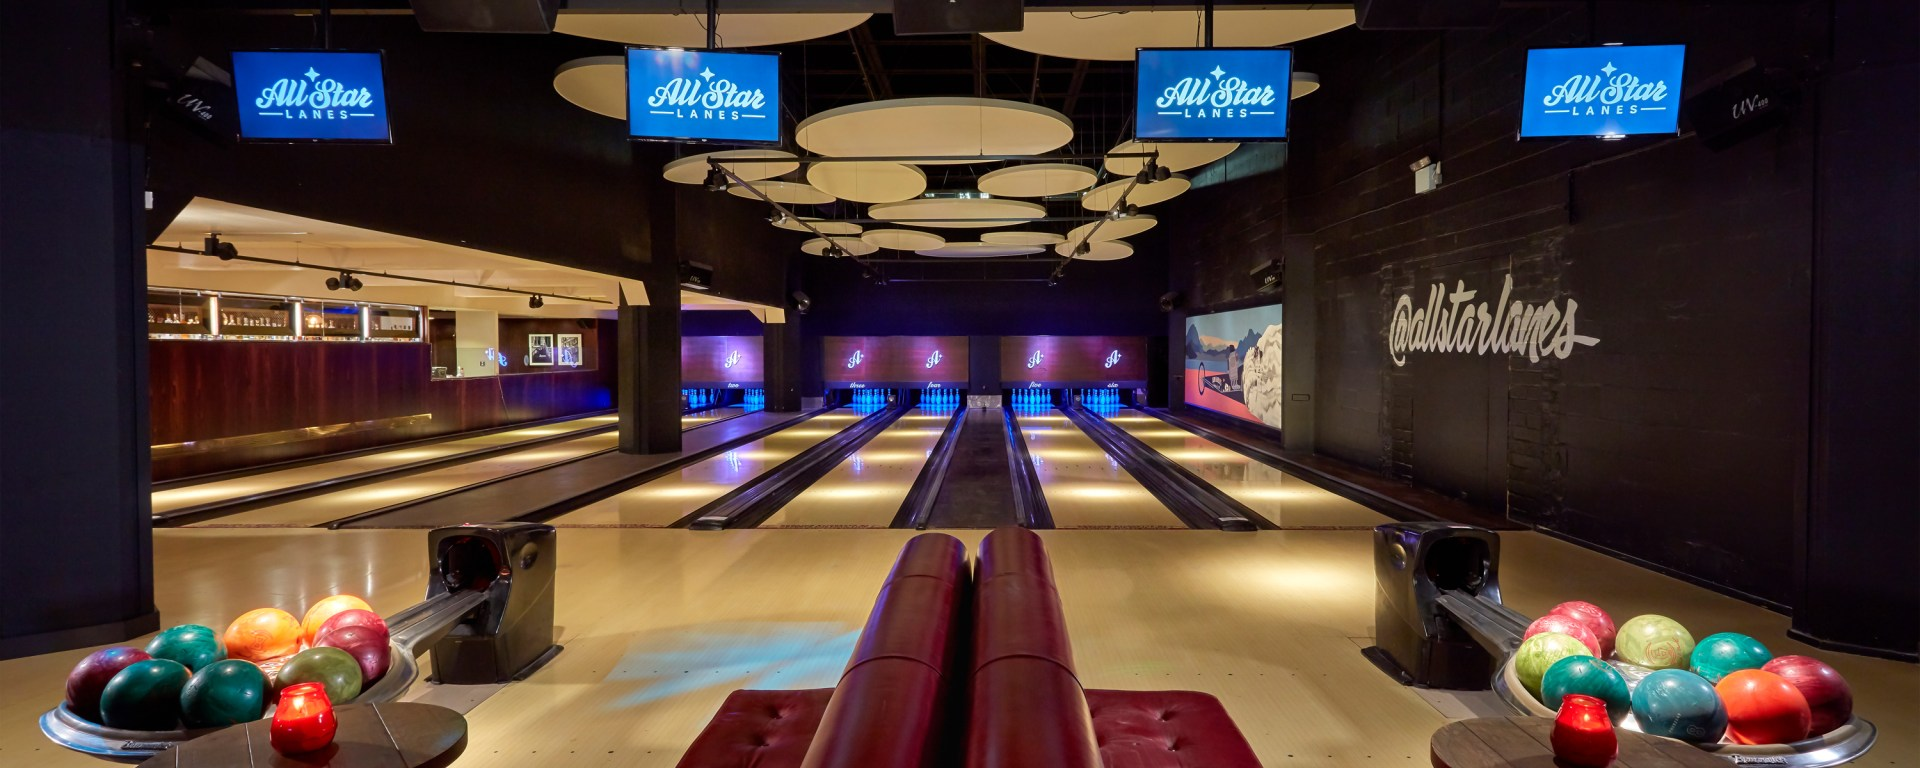 free bowling in London